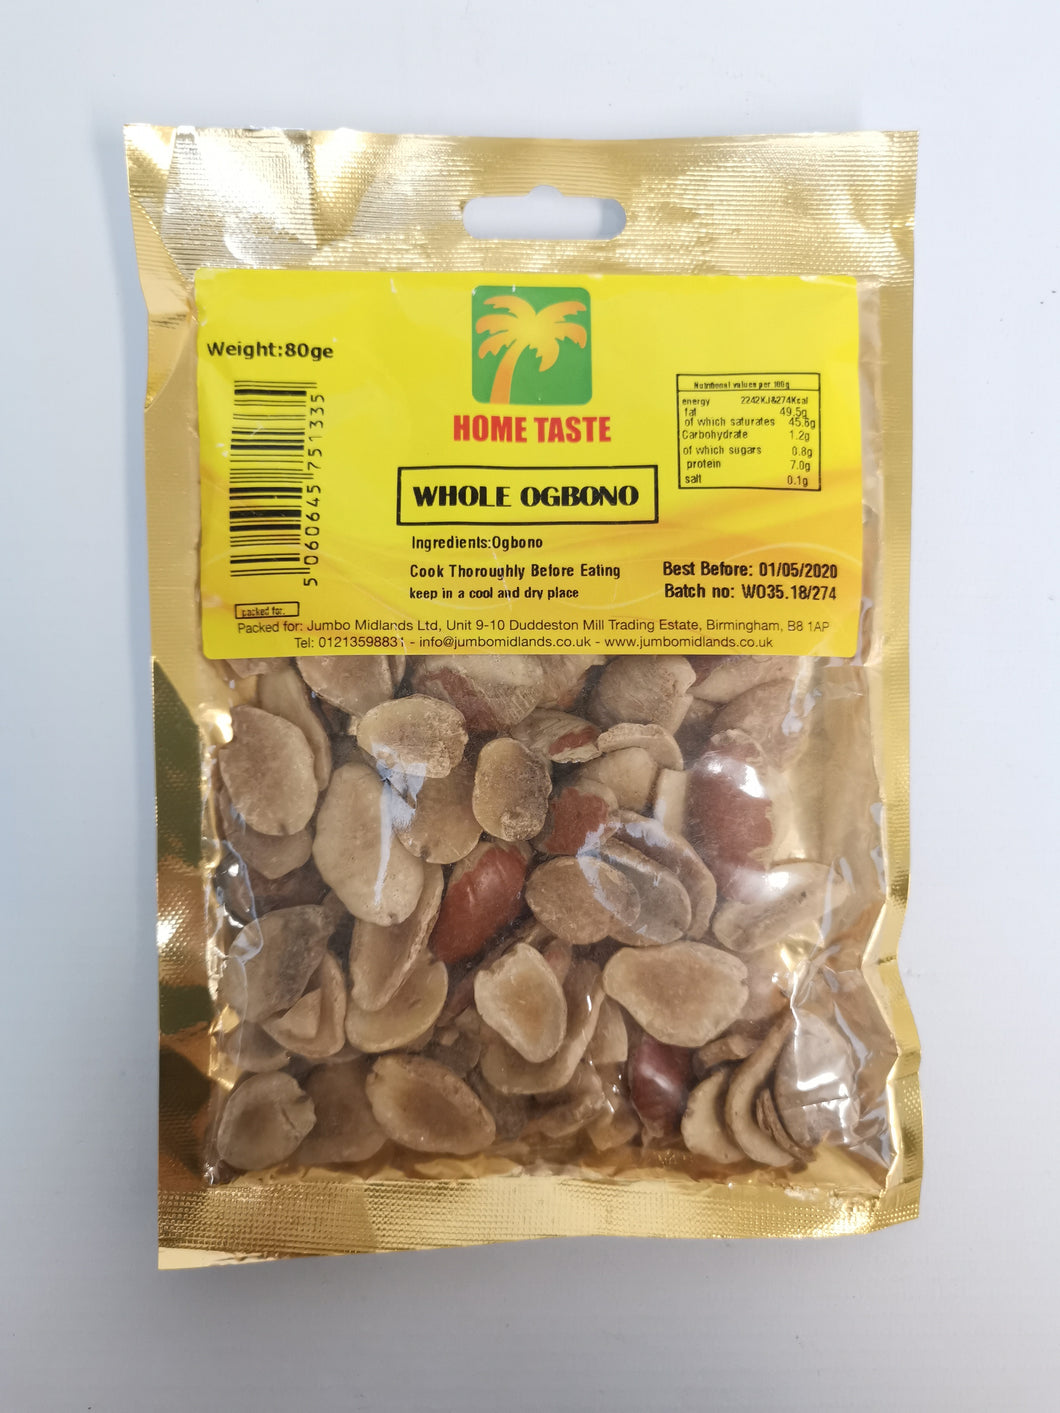 Home Taste Whole Ogbono 80g